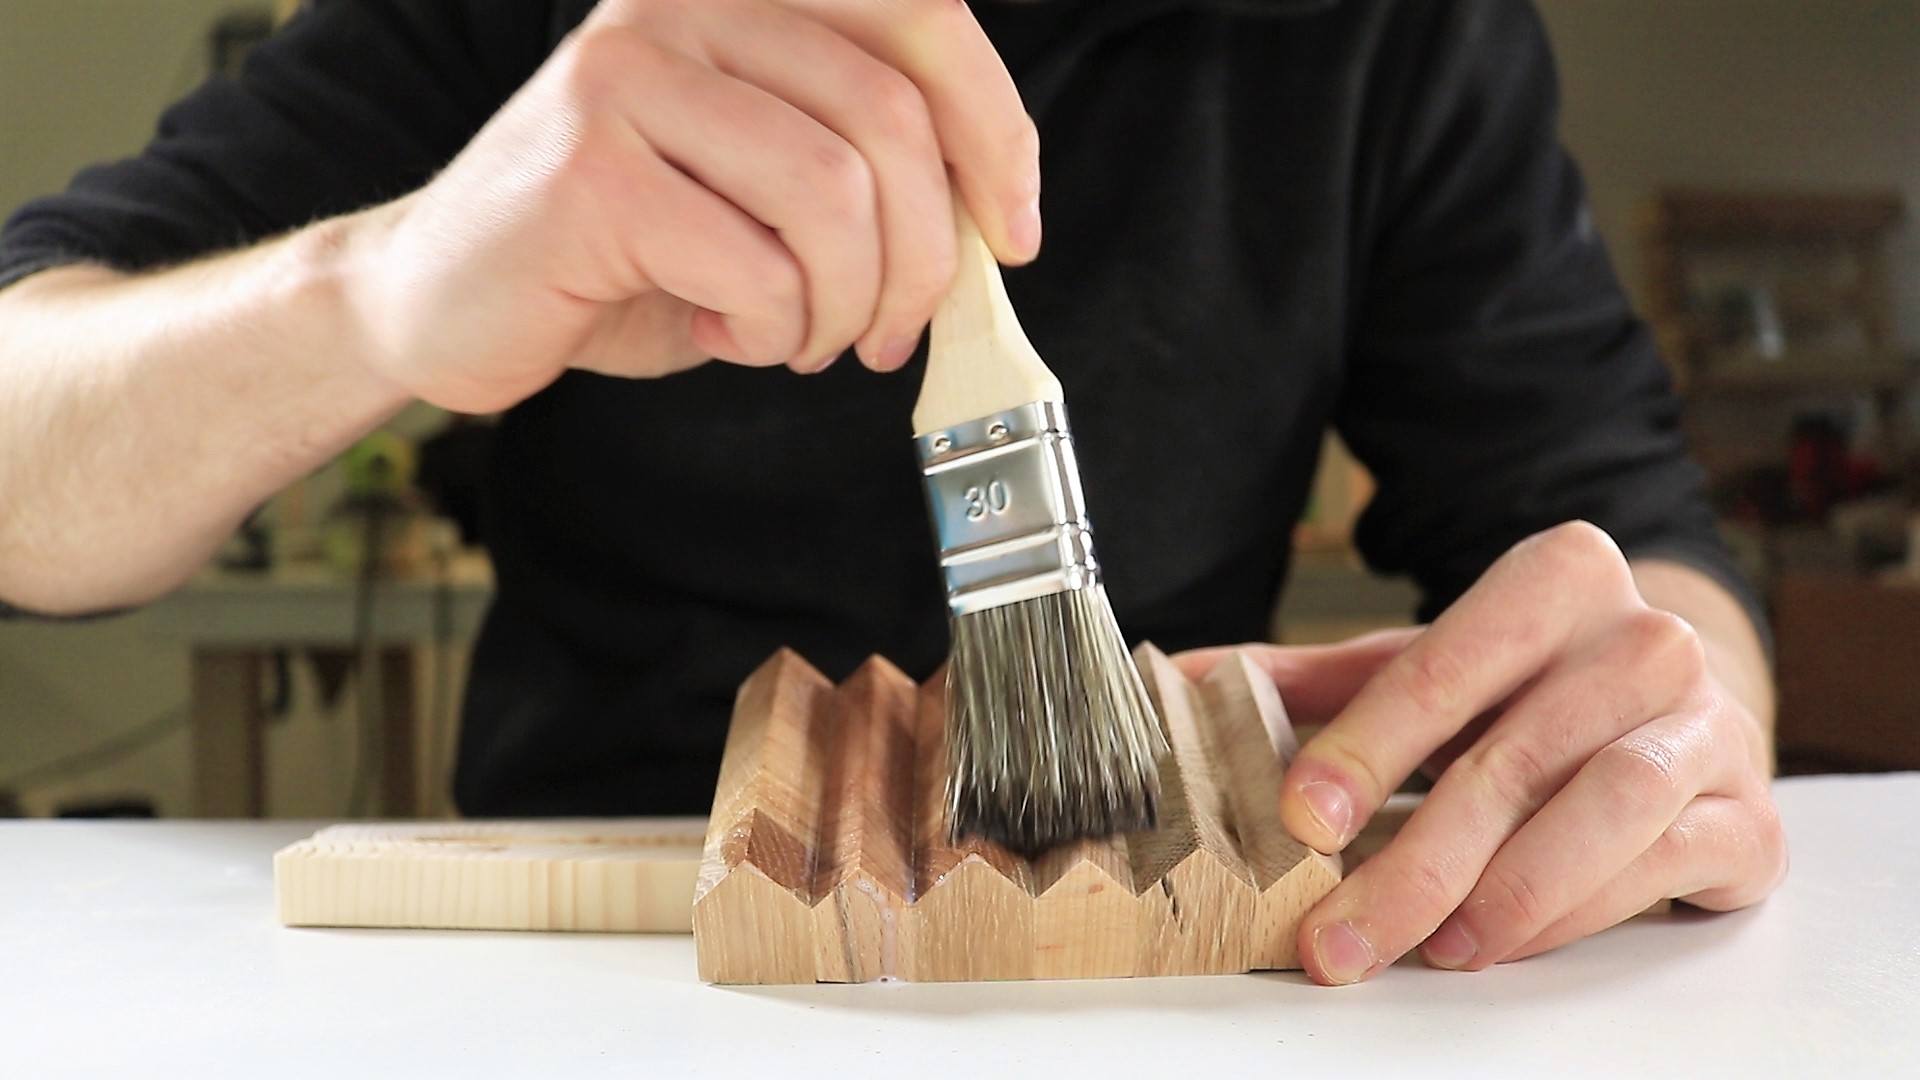 Polish with wood polisher. Let it dry and repeat after sanding with sanding paper with the grit of 120.